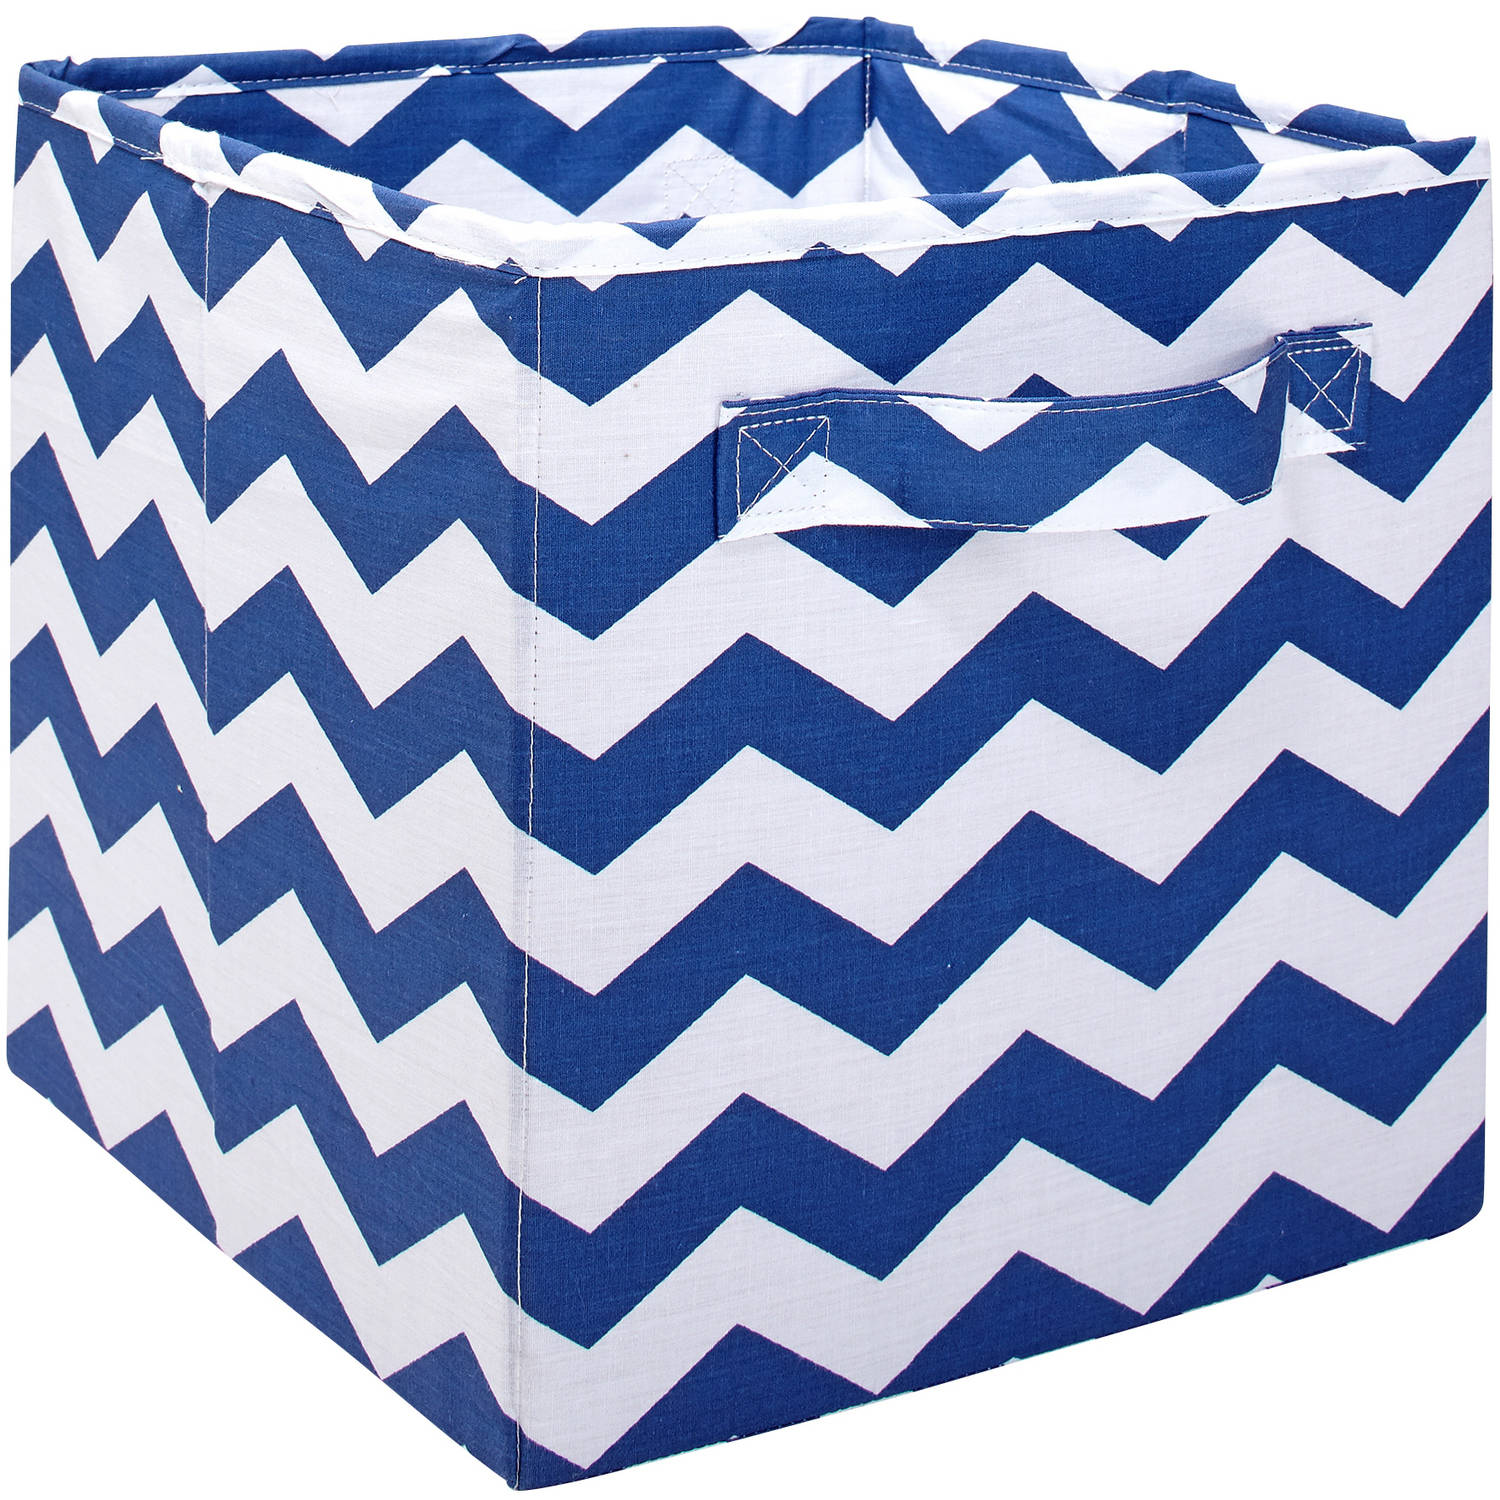 Little Love Collapsible Nursery Organizer, Navy